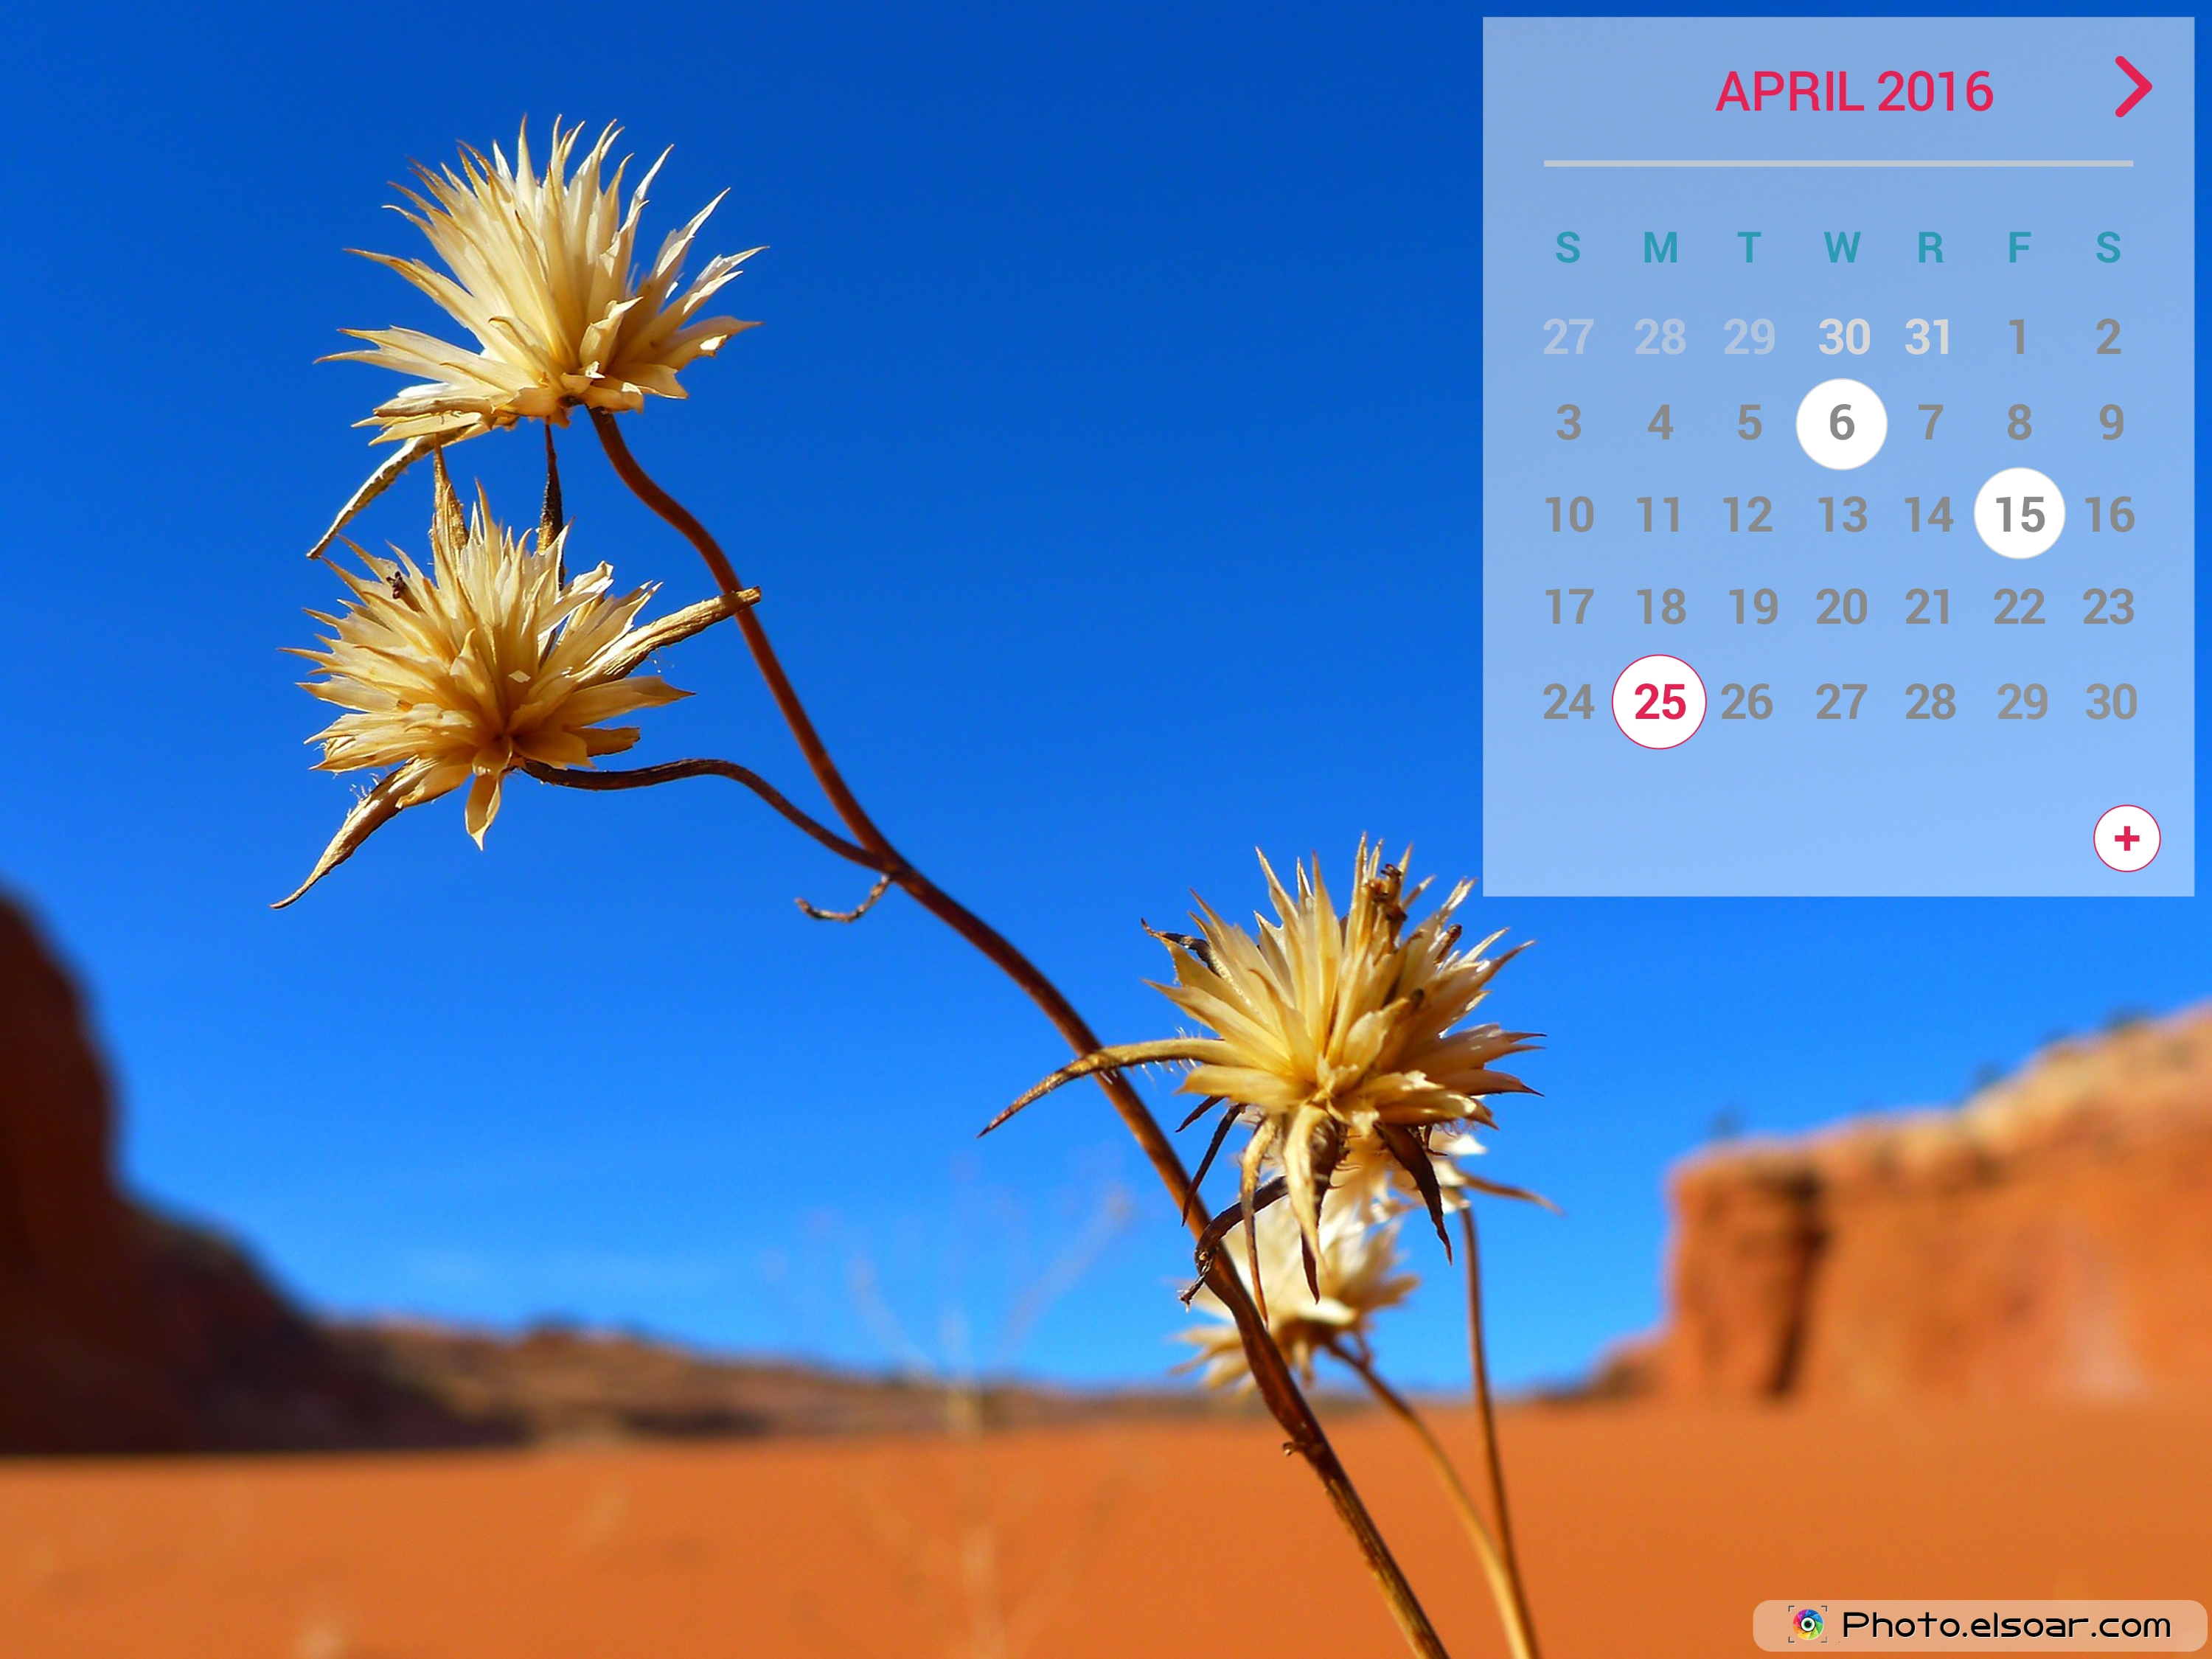 April 2016 Calendar In The Background Of Desert Calendars for April 3000x2250